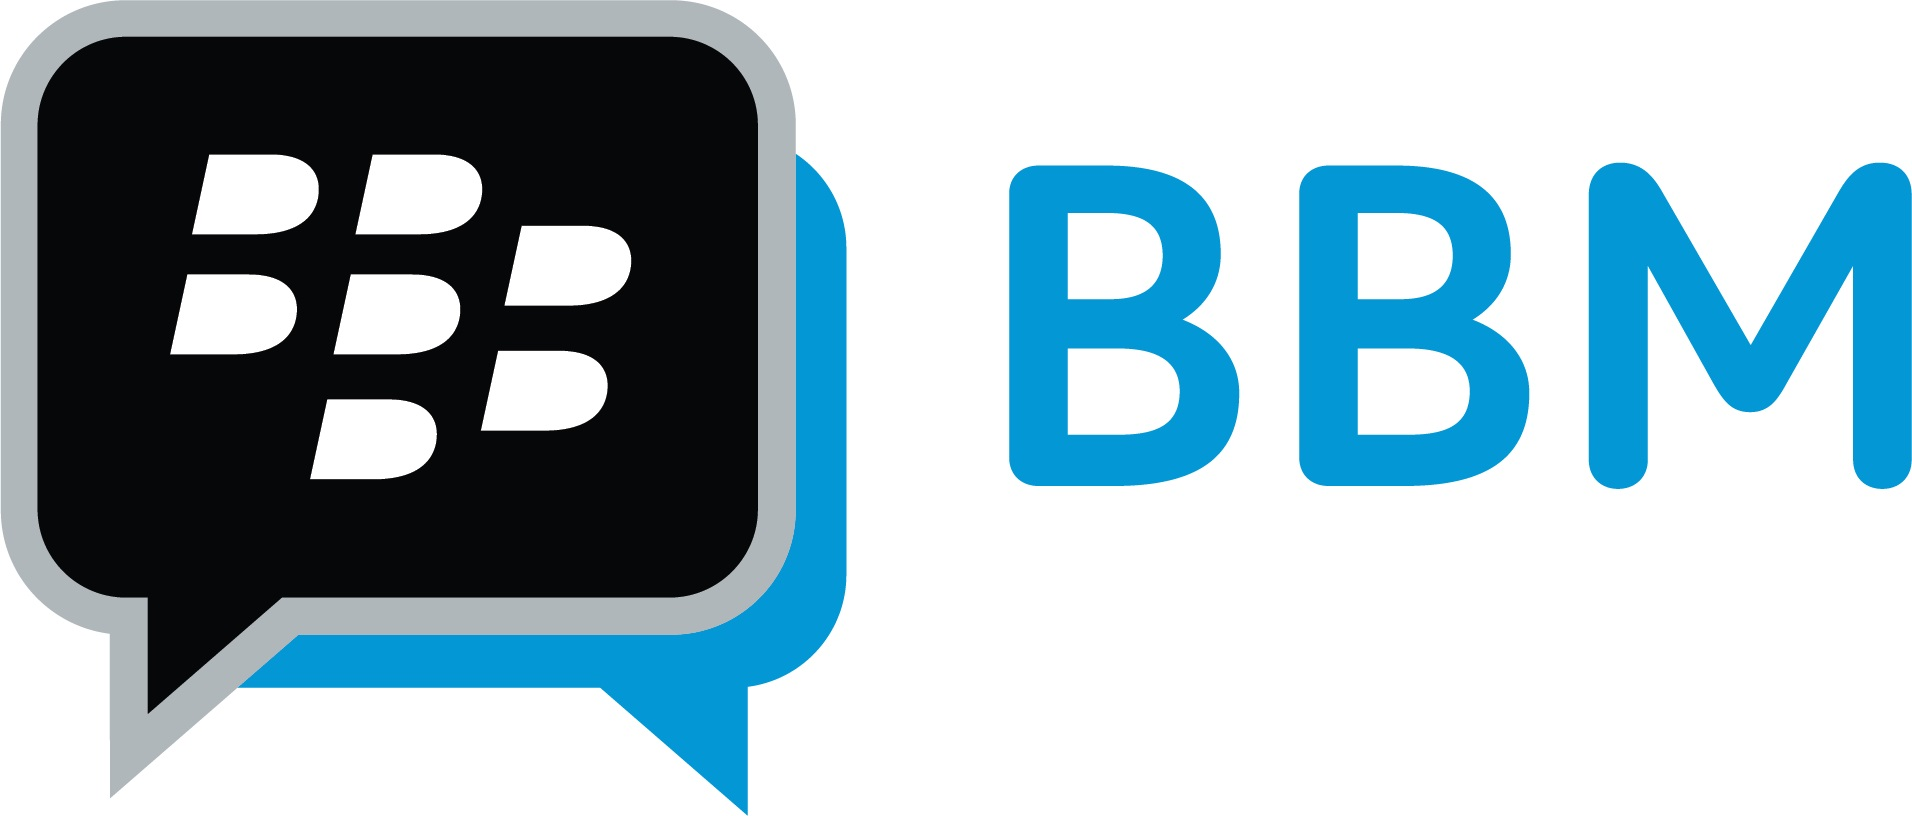 Bbm dating south africa